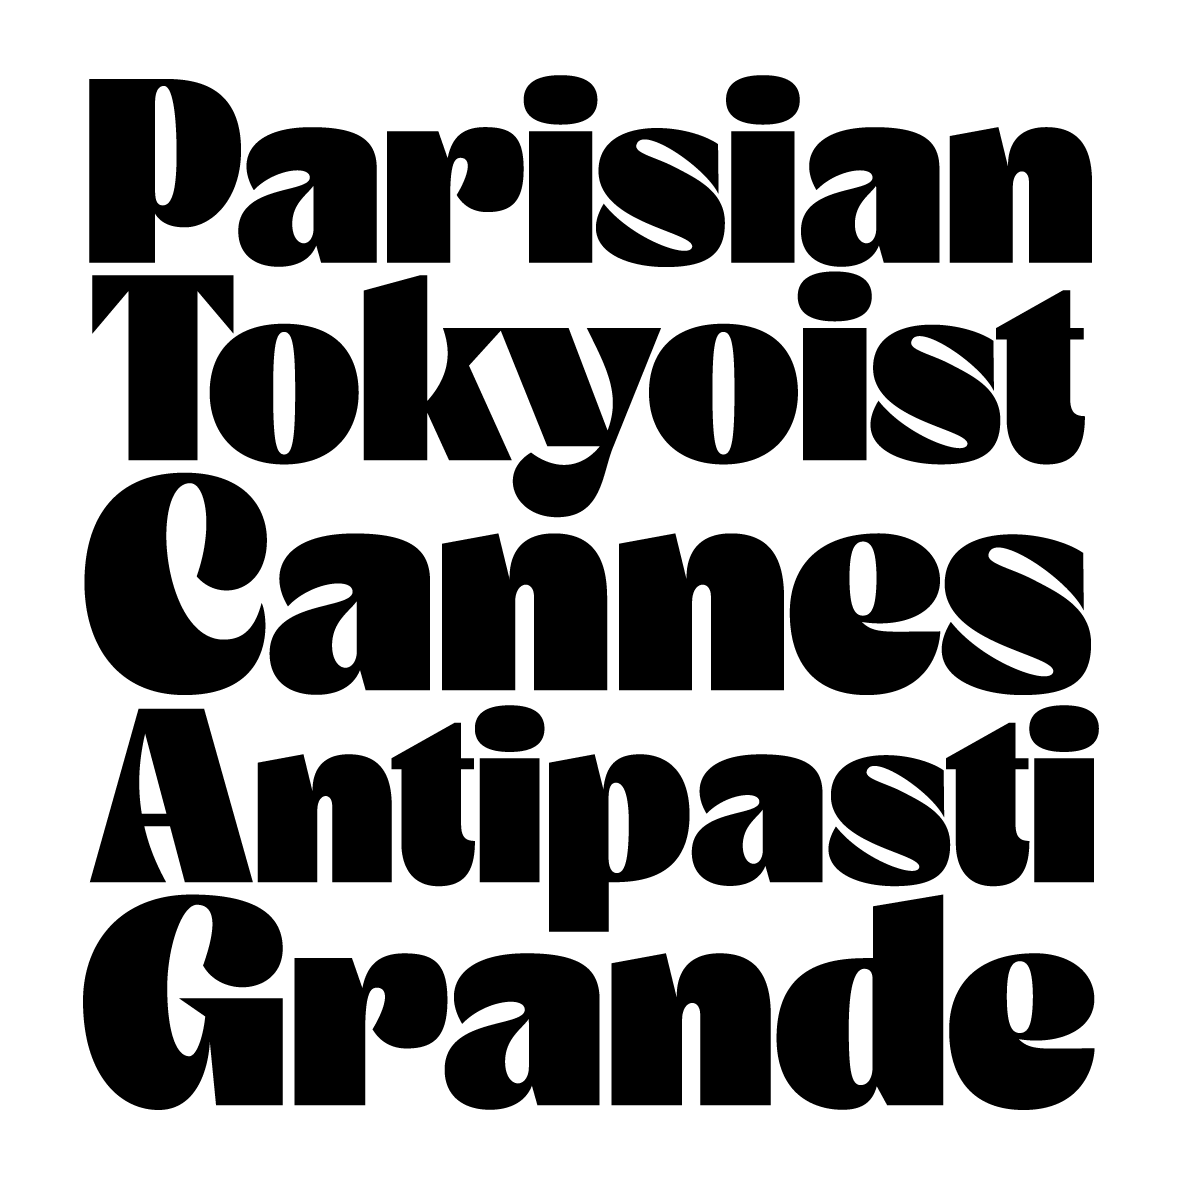 Brule, a new display typeface designed by Andrei Robu for Typeverything.com